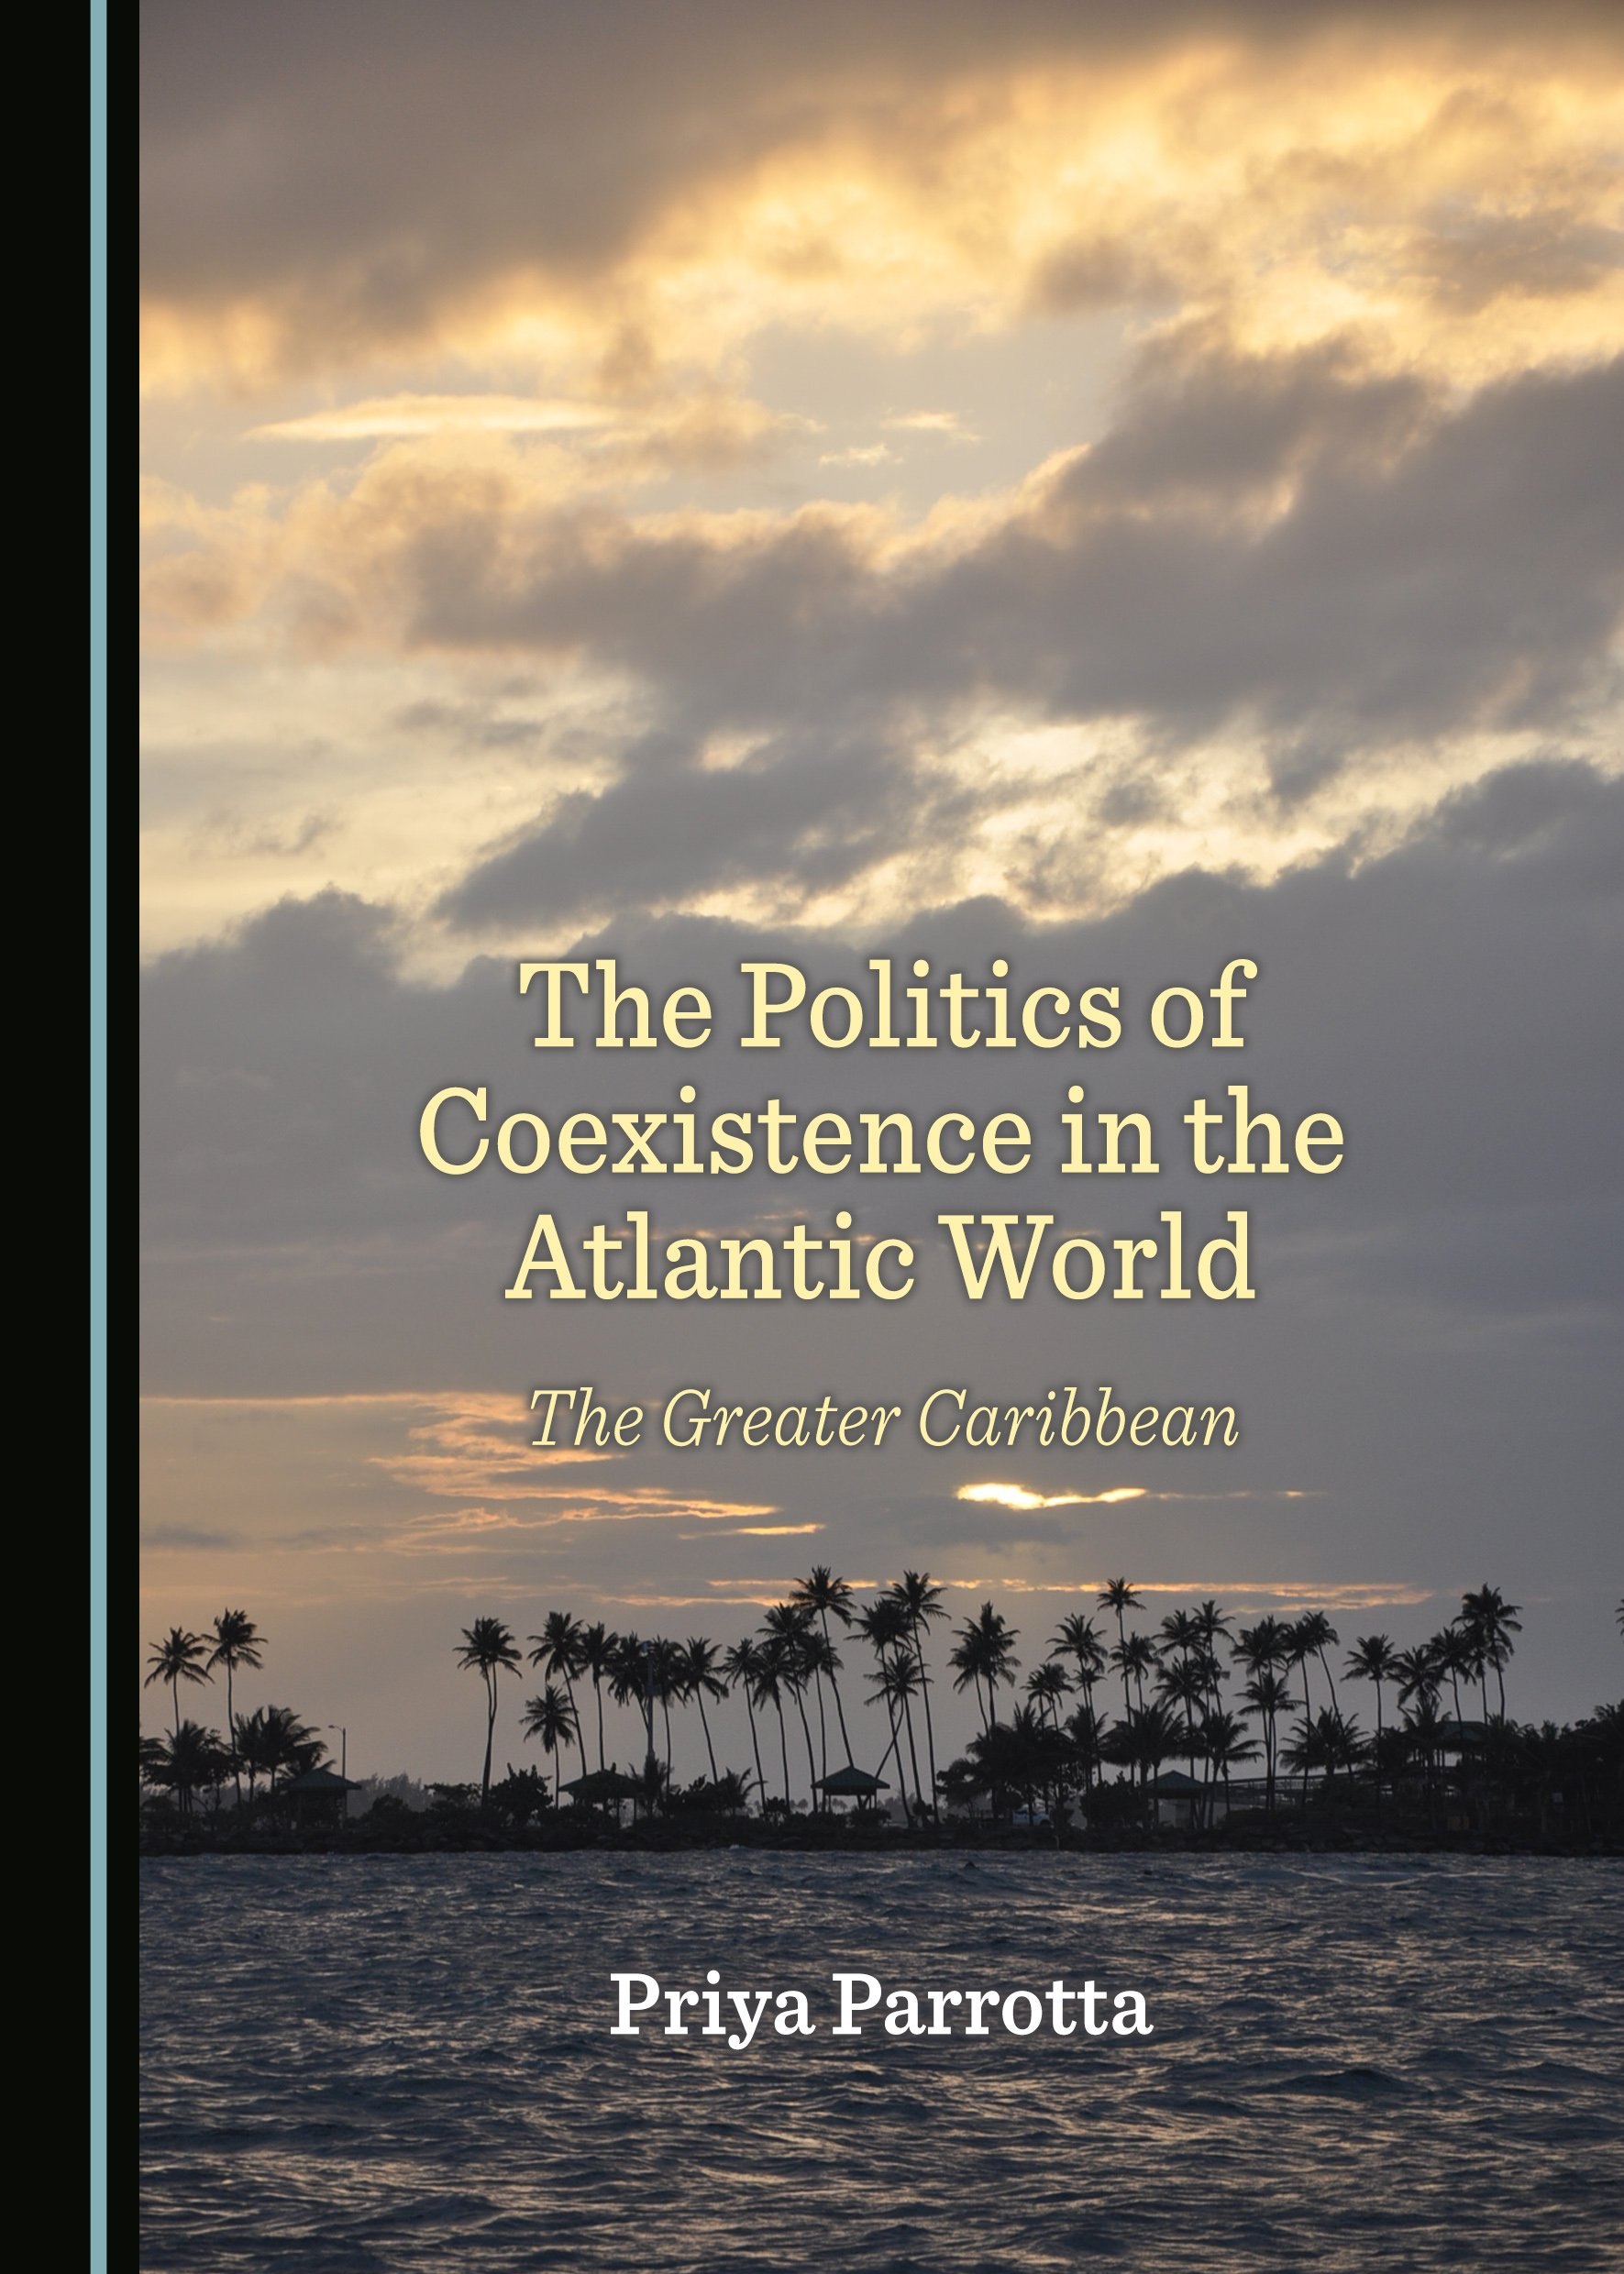 The Politics of Coexistence in the Atlantic World: The Greater Caribbean